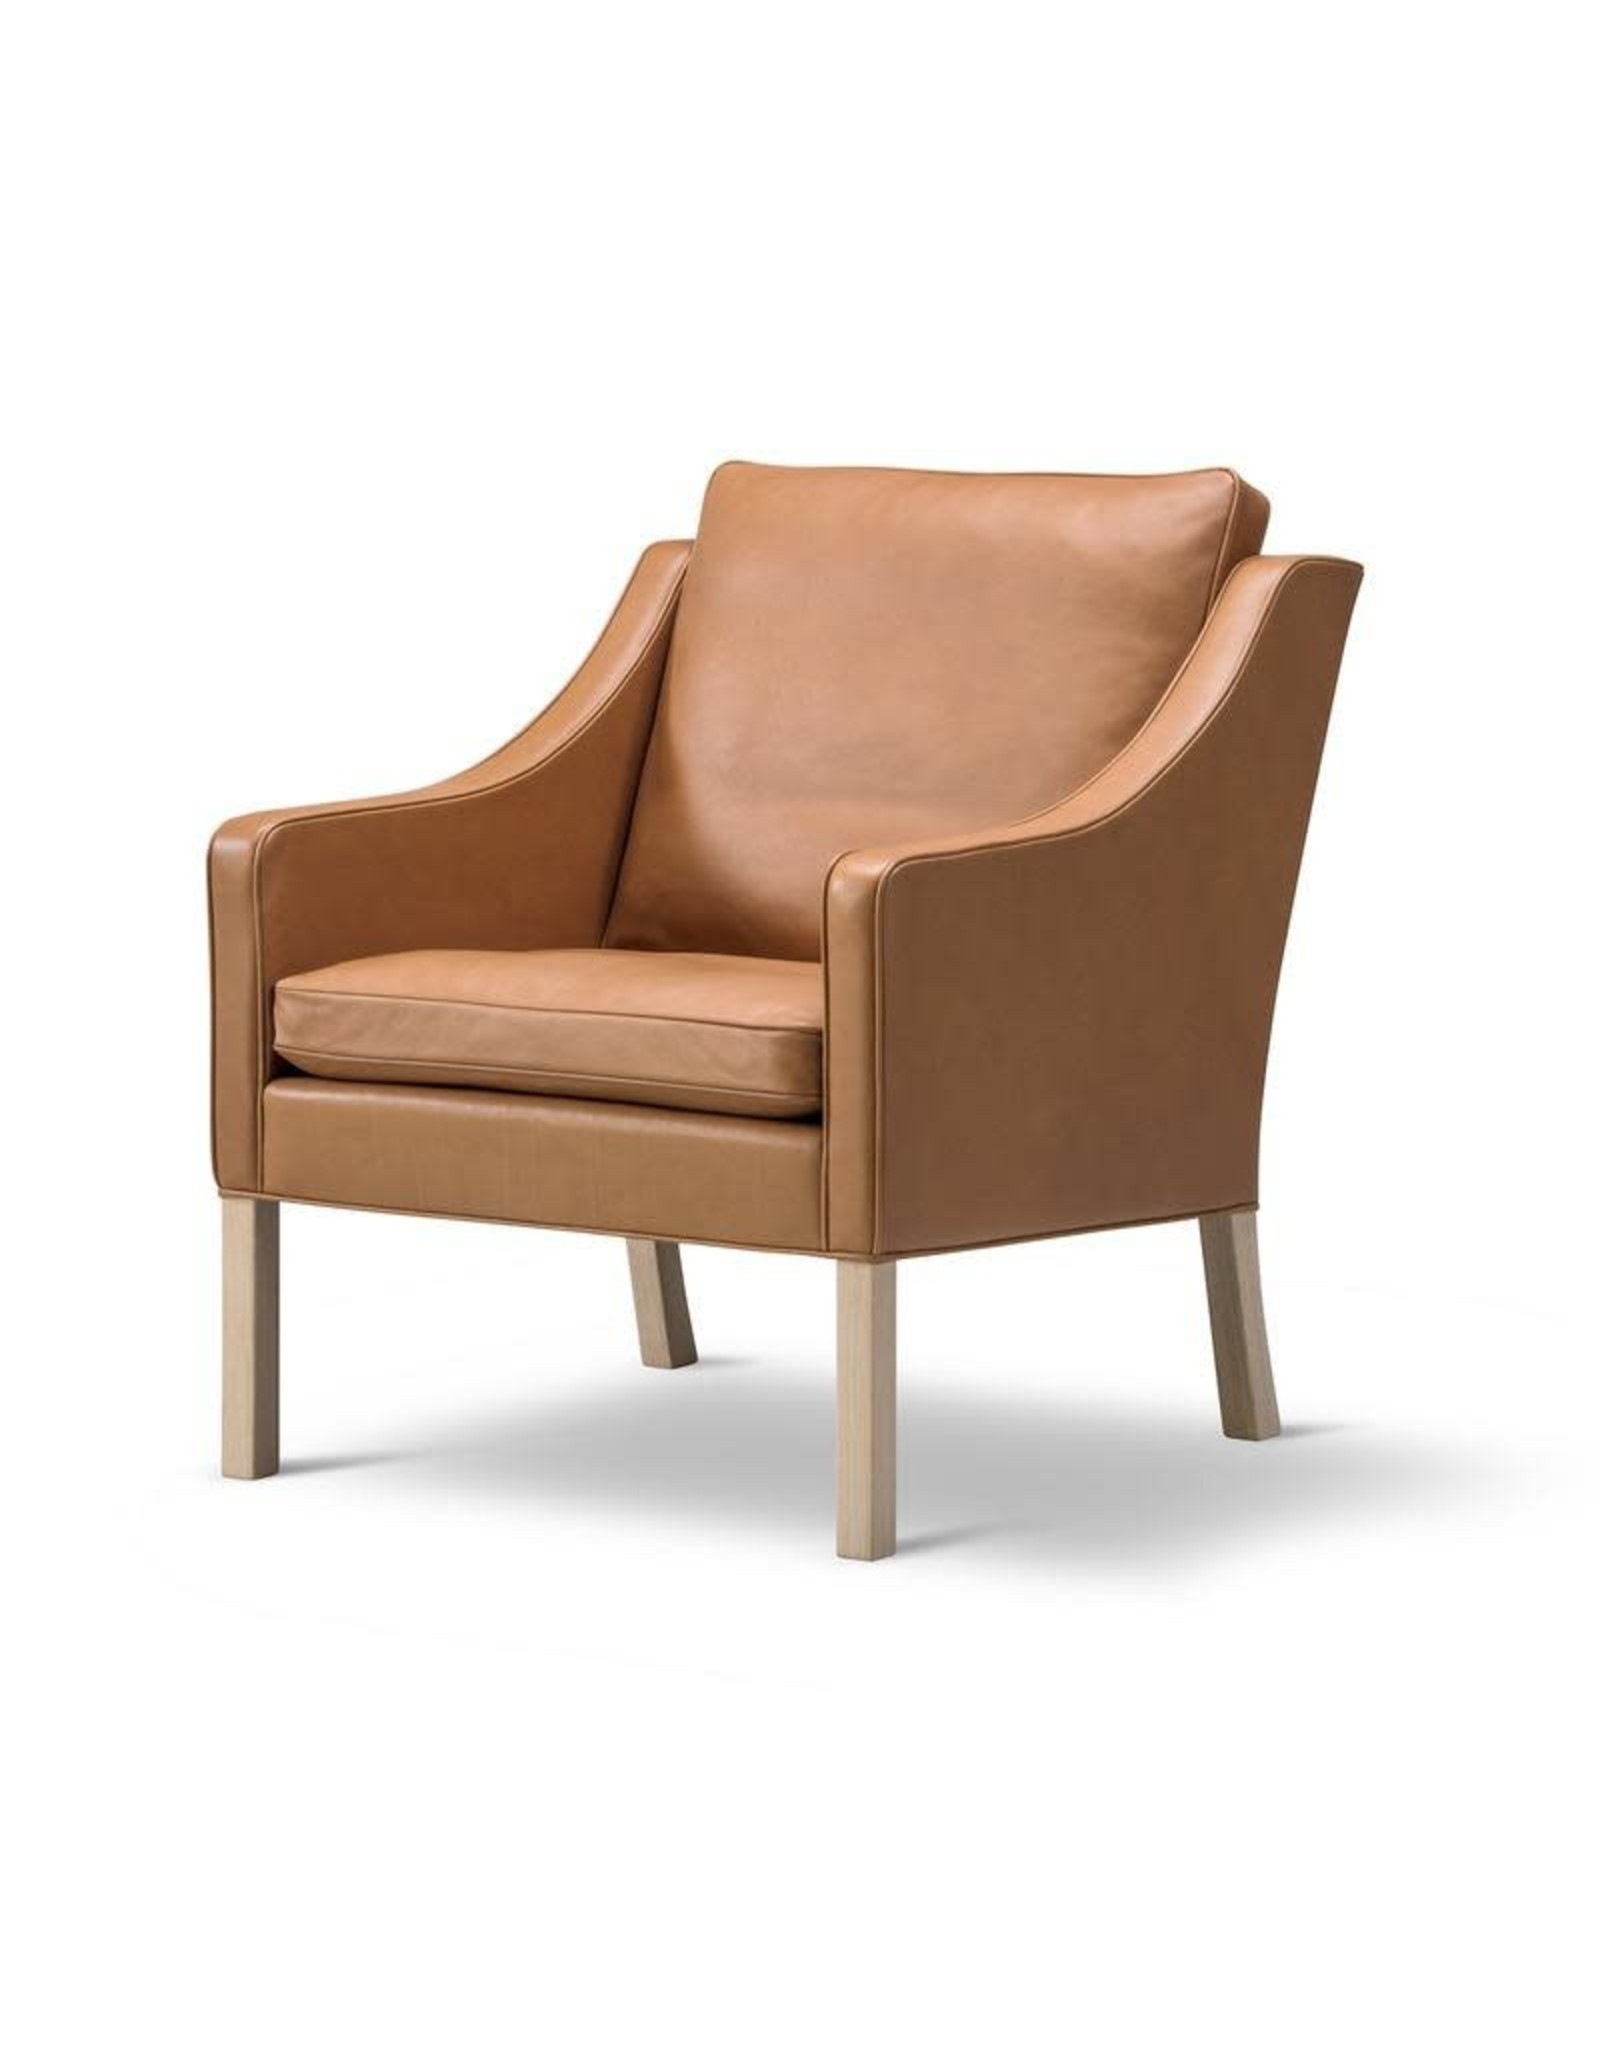 FREDERICIA 2207 LOUNGE CHAIR UPHOLSTERED IN WALNUT LEATHER